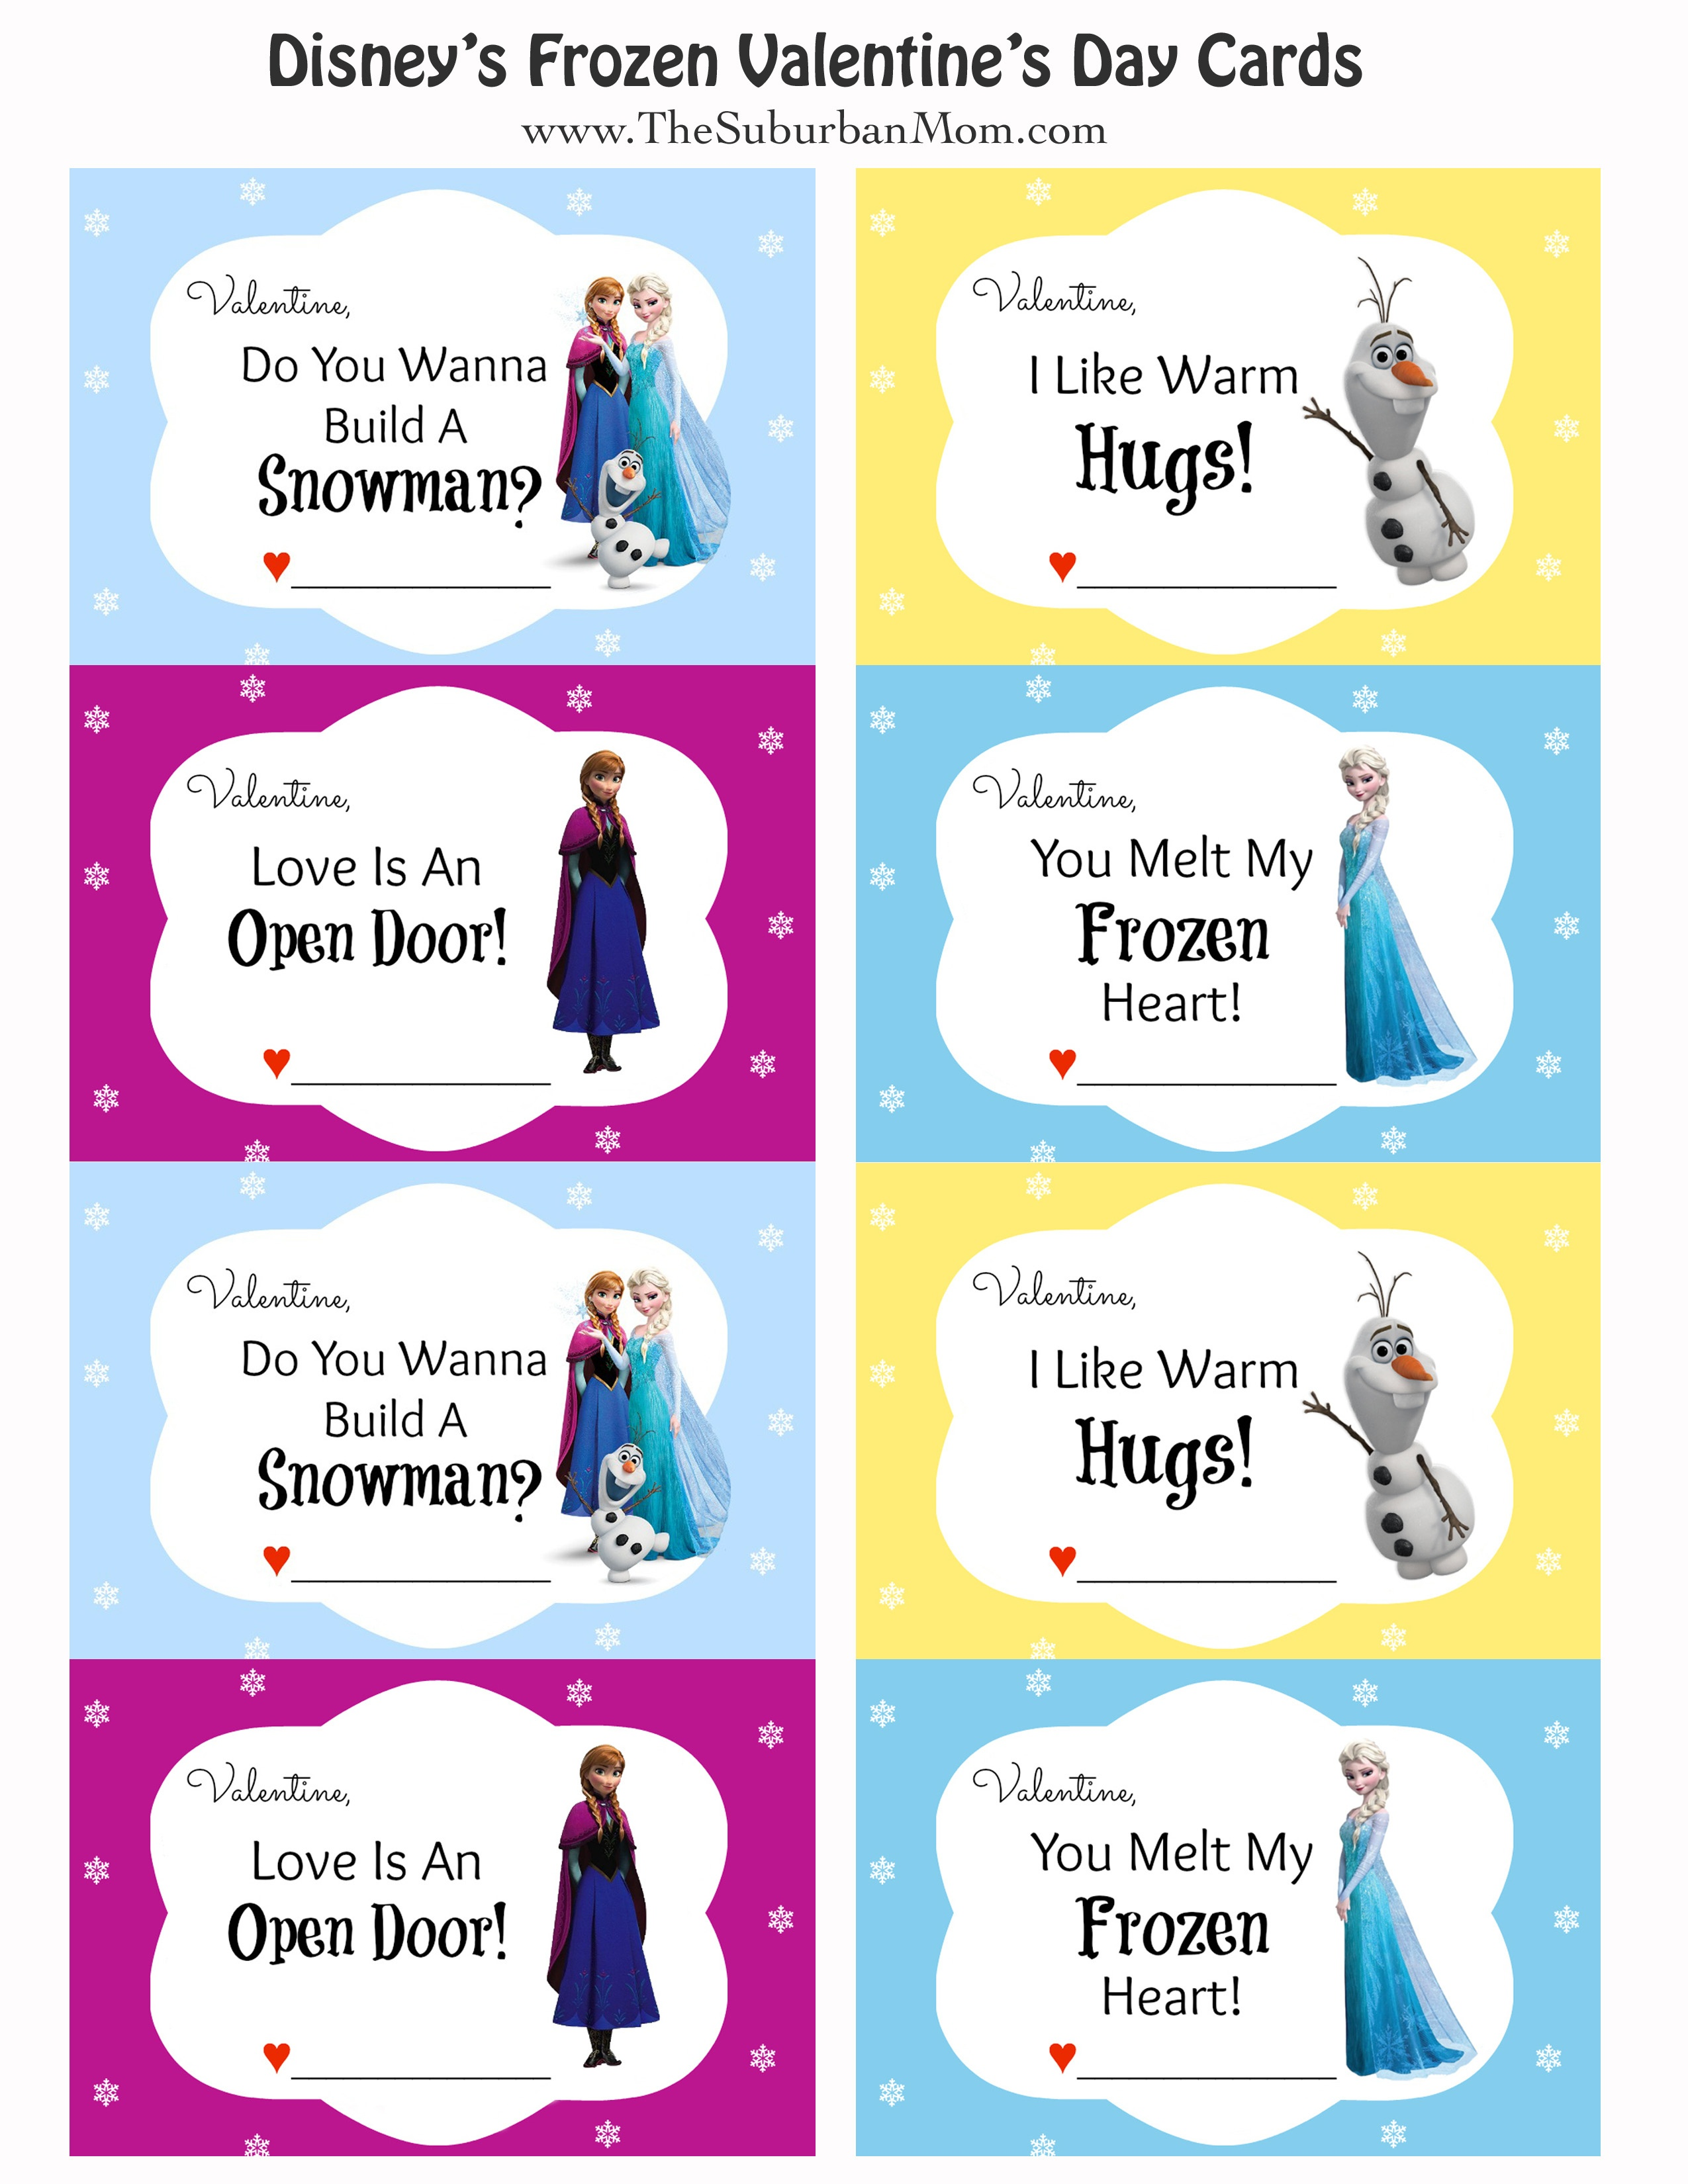 Free Printable Disney Frozen Valentine's Day Cards - Thesuburbanmom - Free Printable Valentines Day Cards For My Daughter